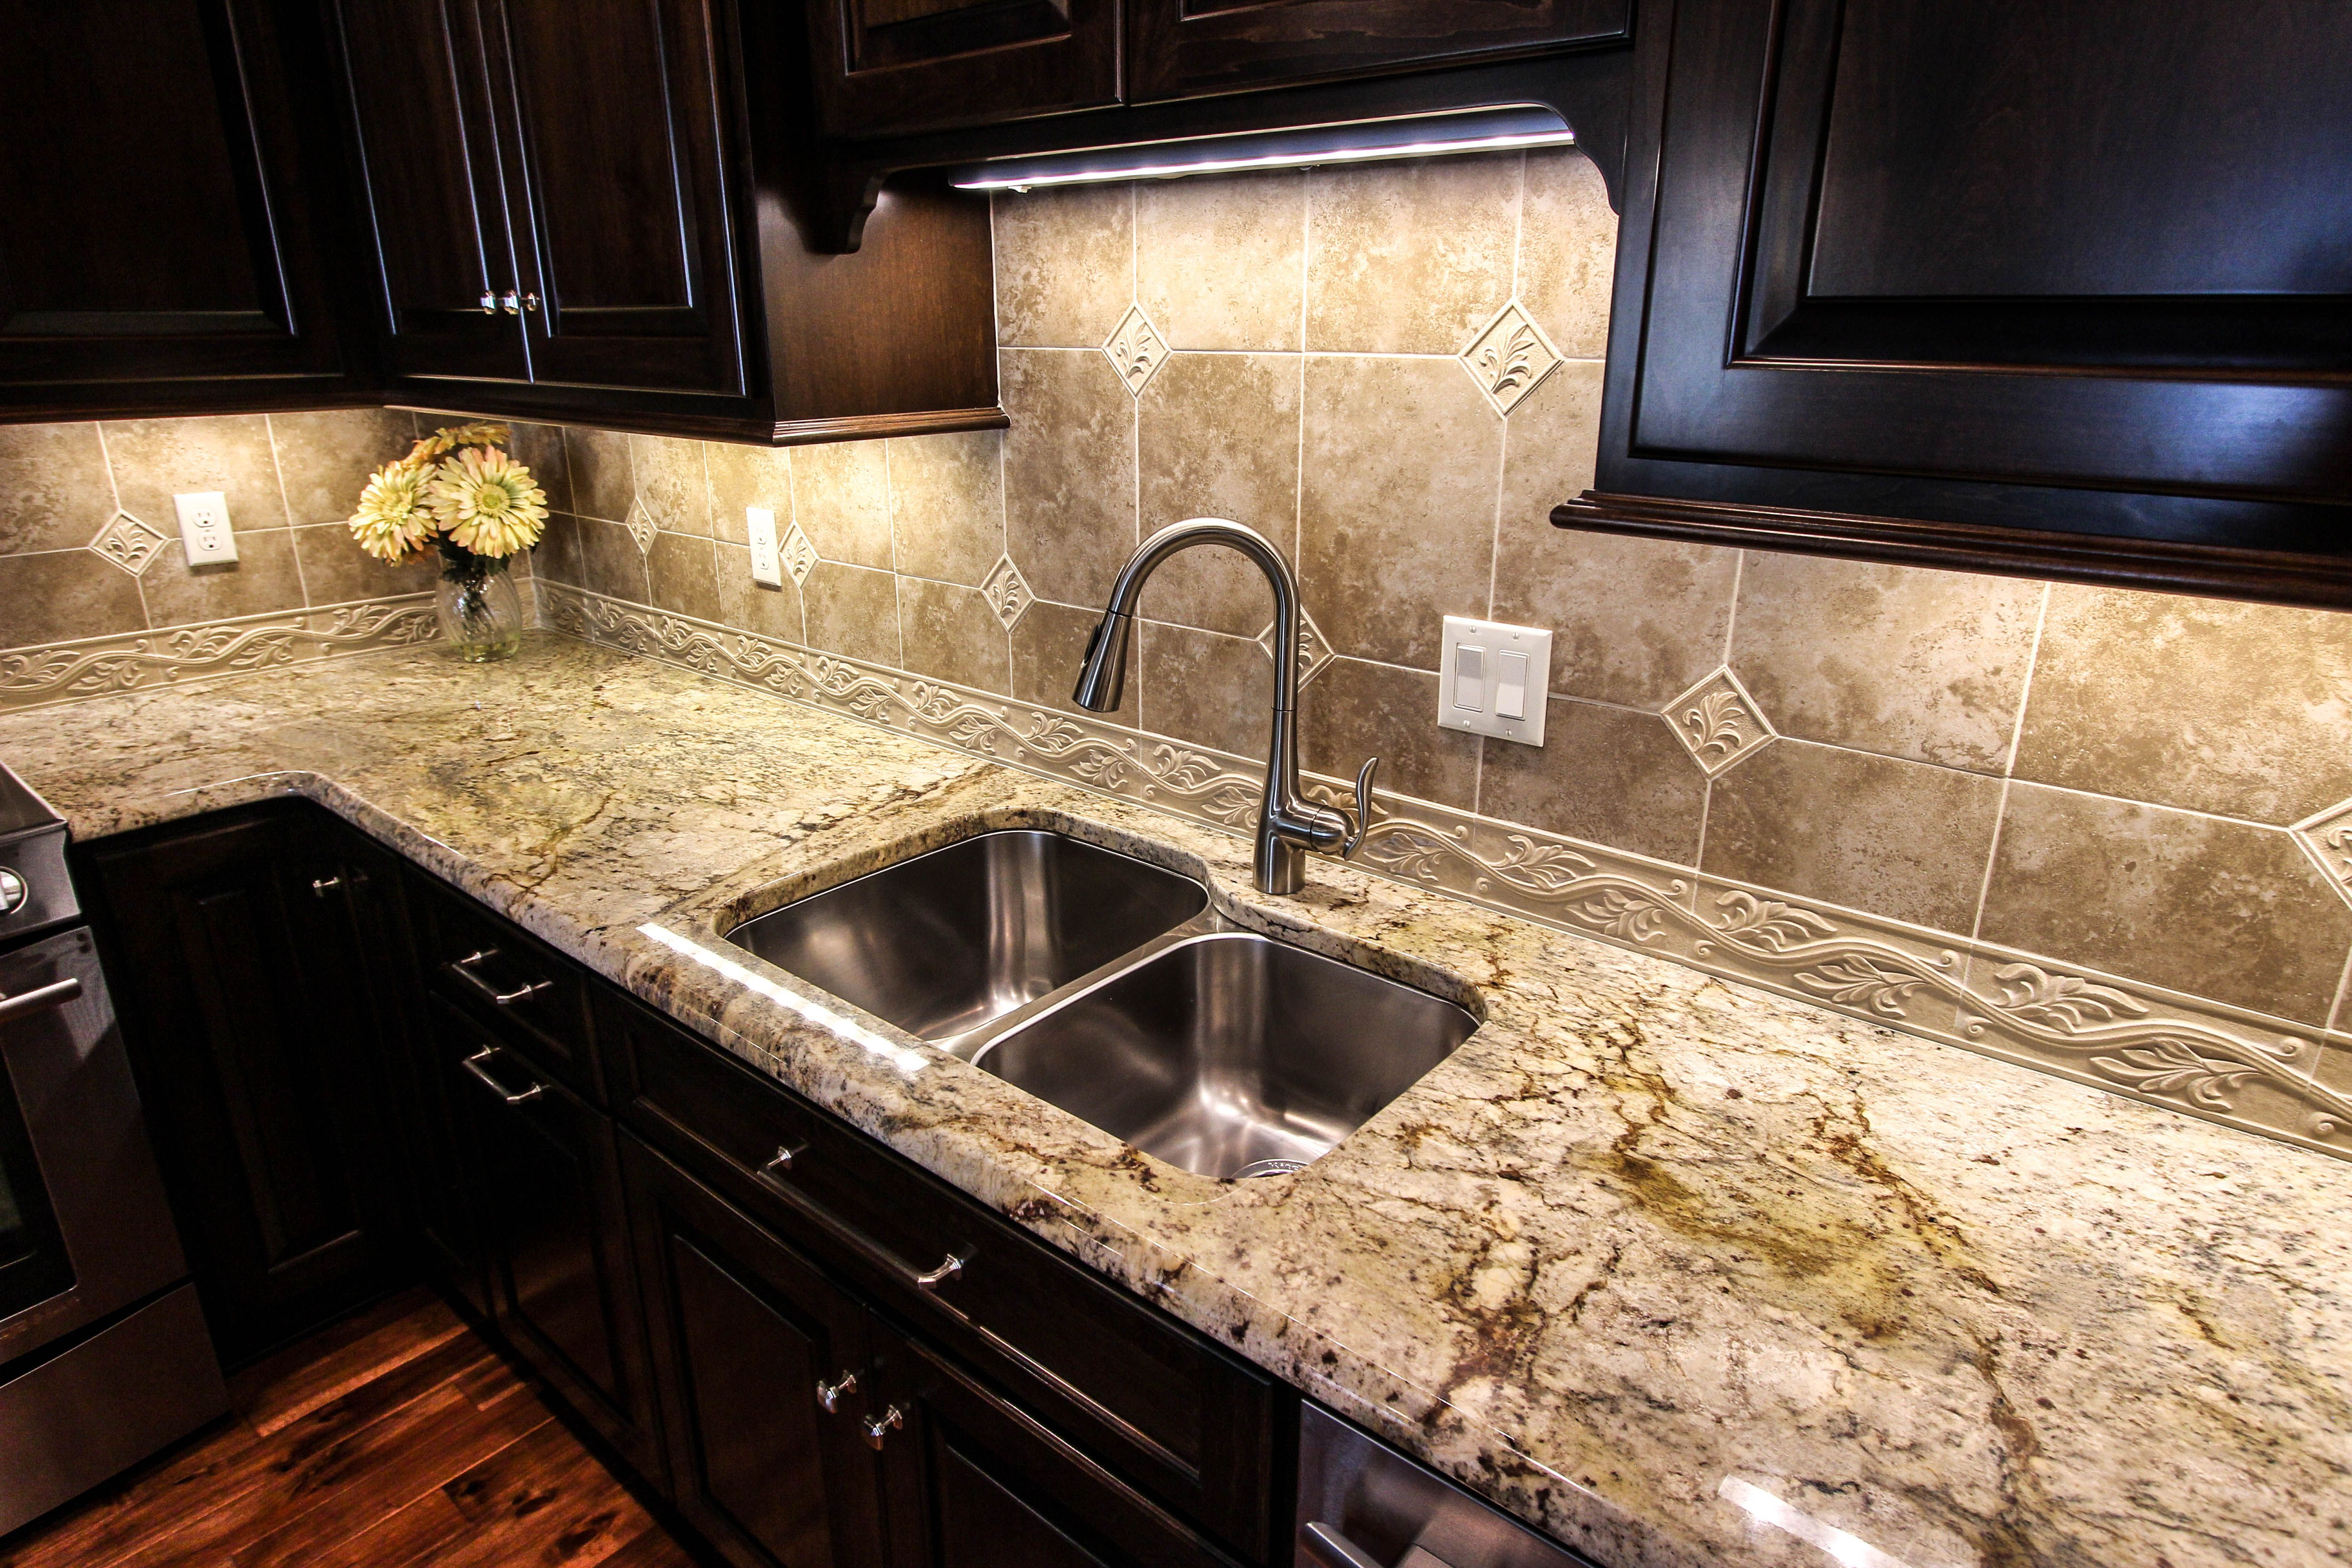 Practically glowing granite kitchen countertops Fabricated and